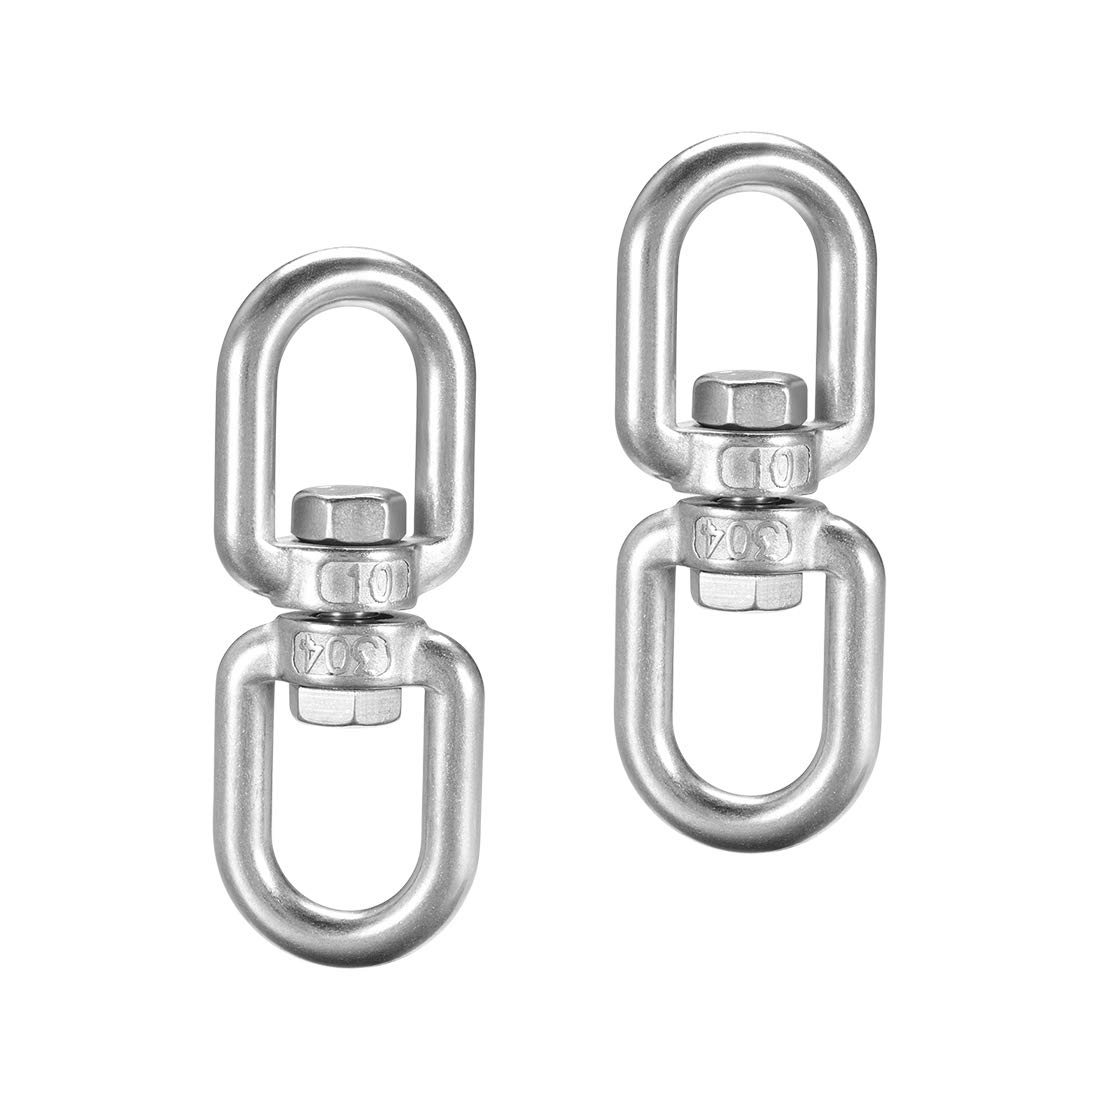 25//64 in Stainless Shackle Connector Bolts Eye to Eye 2 Pcs uxcell M10 Swivel Eye Double Ended Round Rotating Hoist Ring